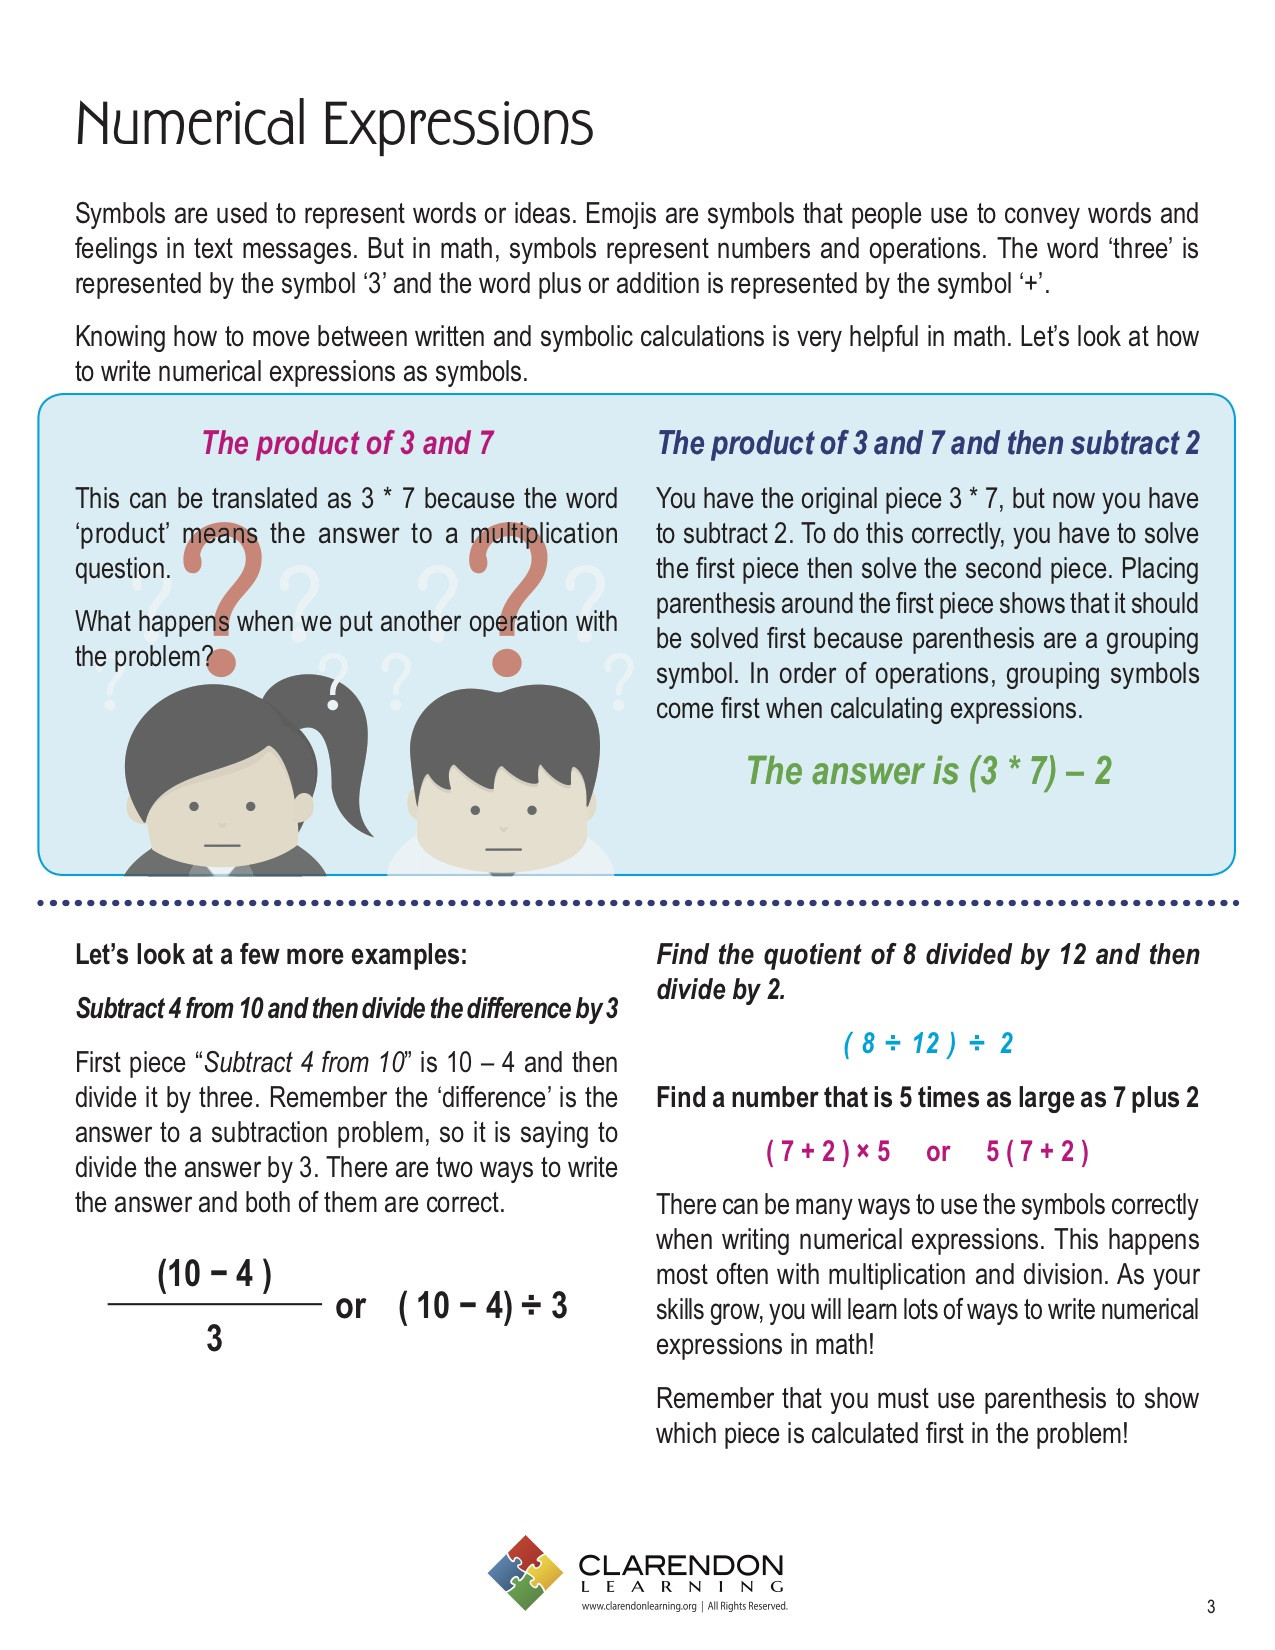 Numerical Expressions Worksheets 6th Grade Numerical Expressions Lesson Plan